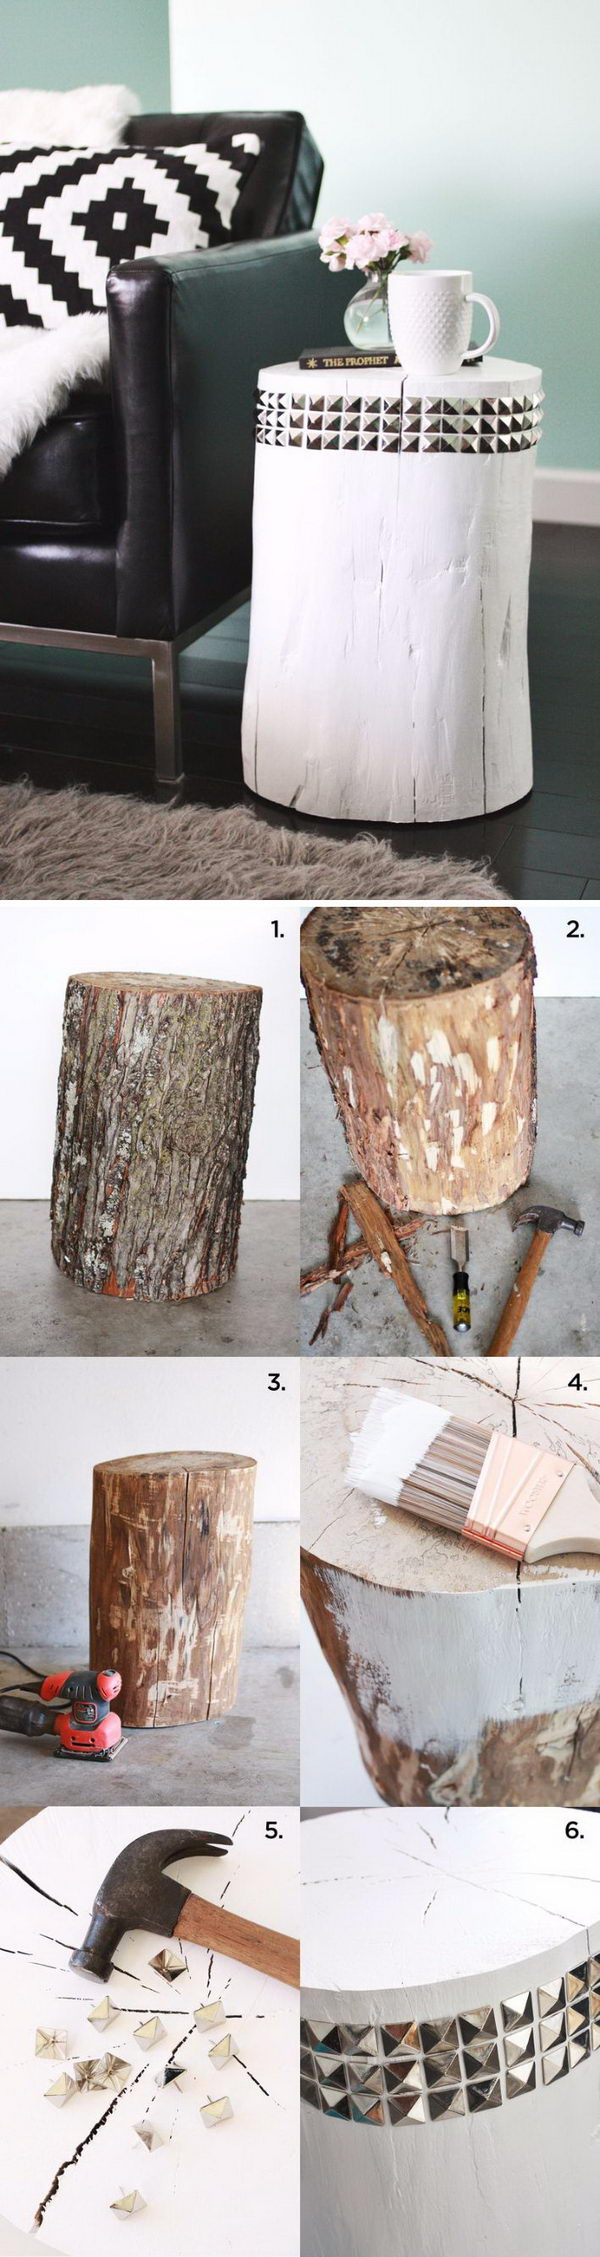 awesome diy side table ideas for outdoors and indoors hative tutorials wire basket accent studded tree stump patio seating counter height dining with bench mirrored console metal